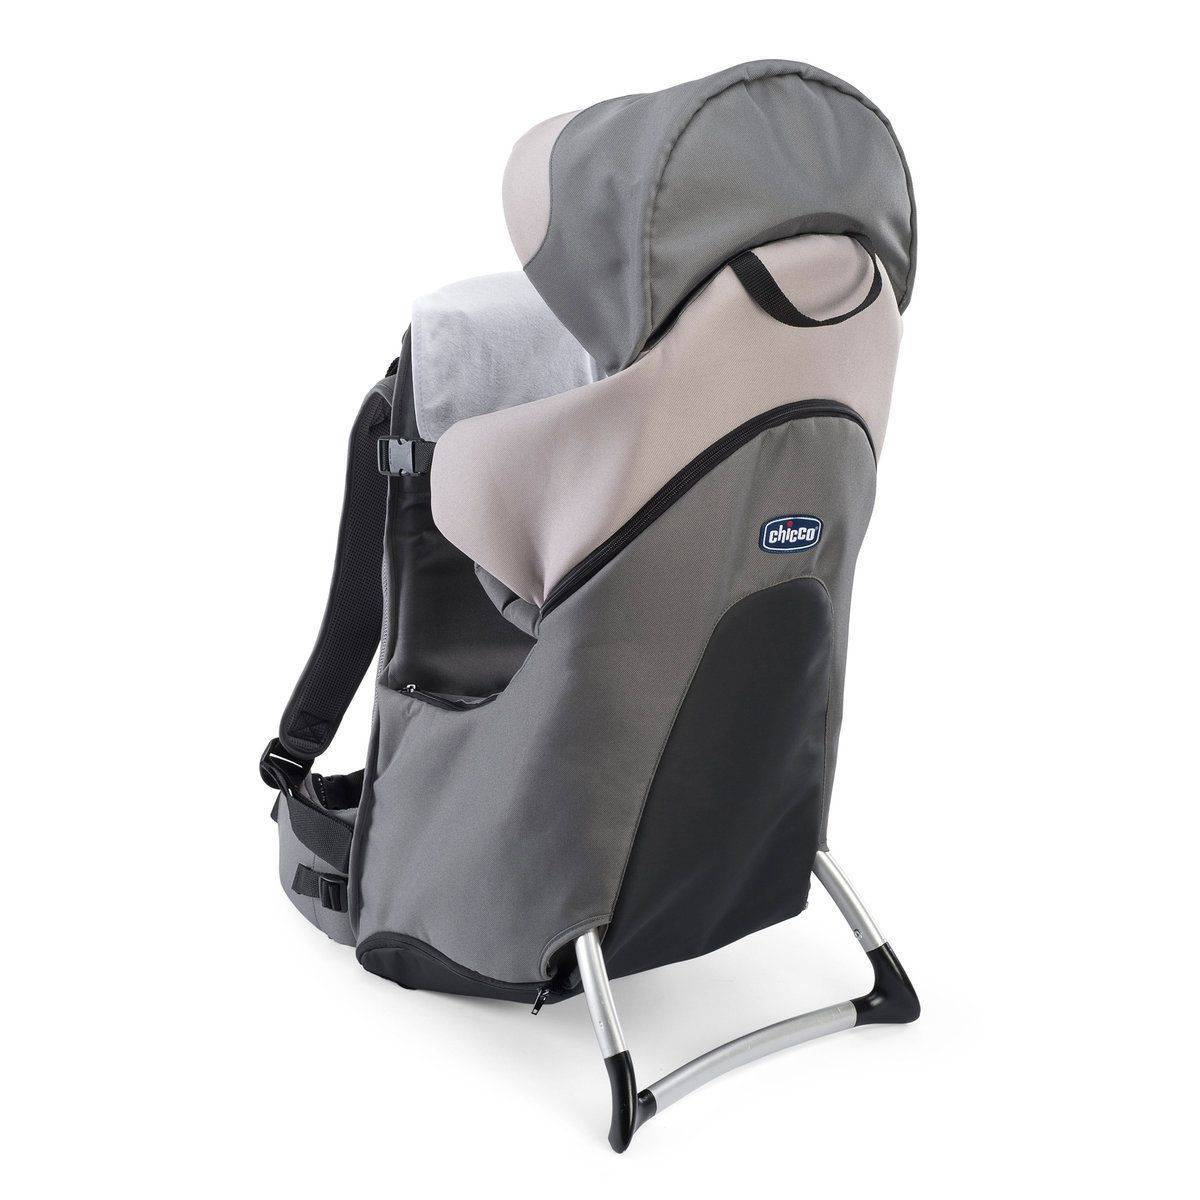 Chicco Porte-bébé dorsal Finder - CHICCO